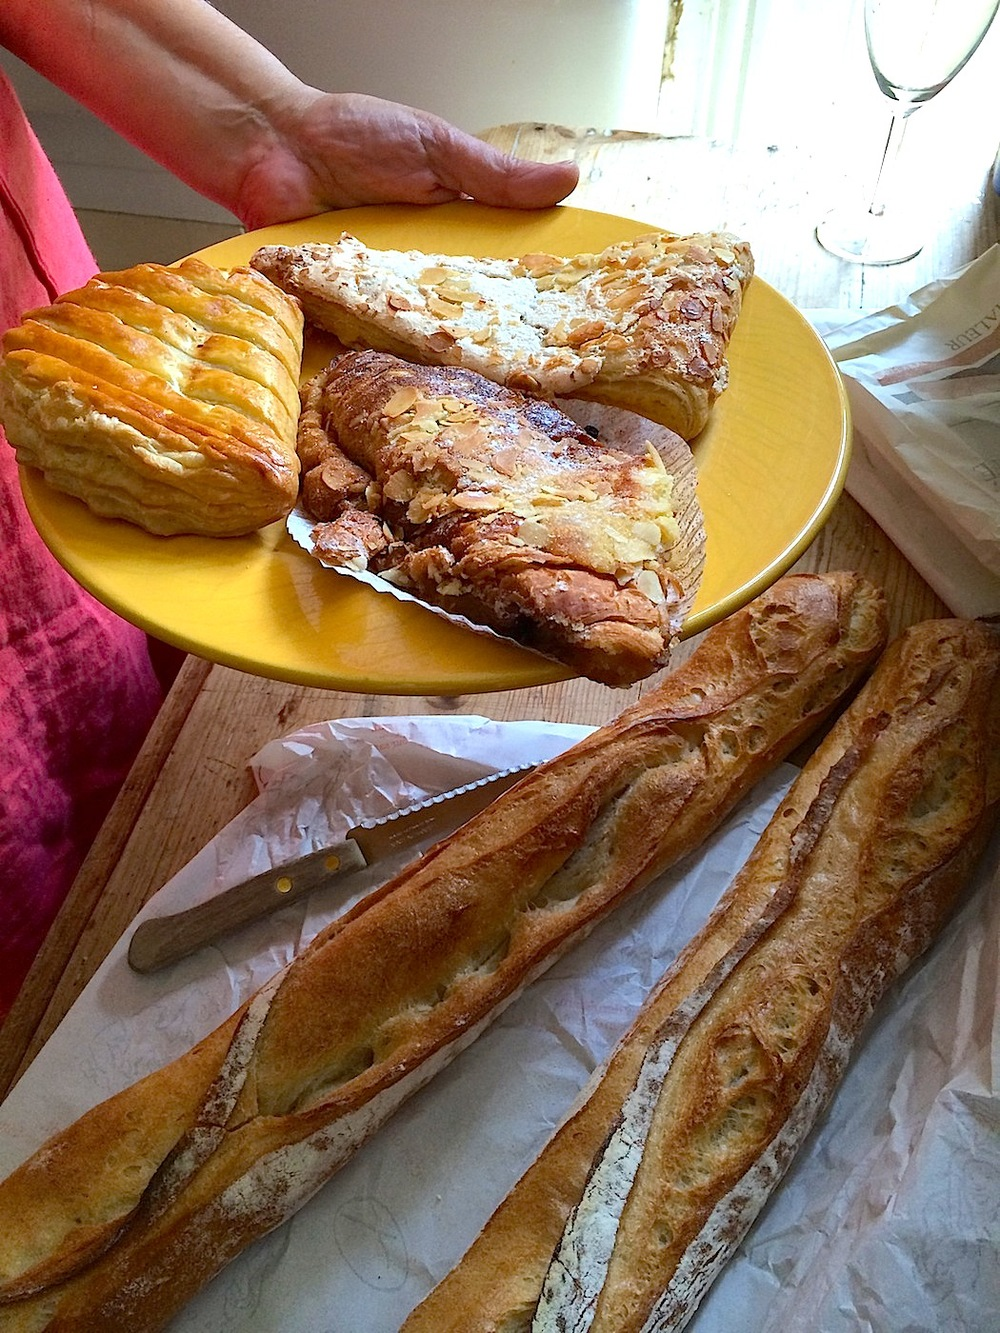 Fresh from the local patisserie boulangerie (clockwise, from left): Jésuite (so named because of its resemblance to a Jesuit's hat), Chausson aux Pommes, andCroissant aux Amandes